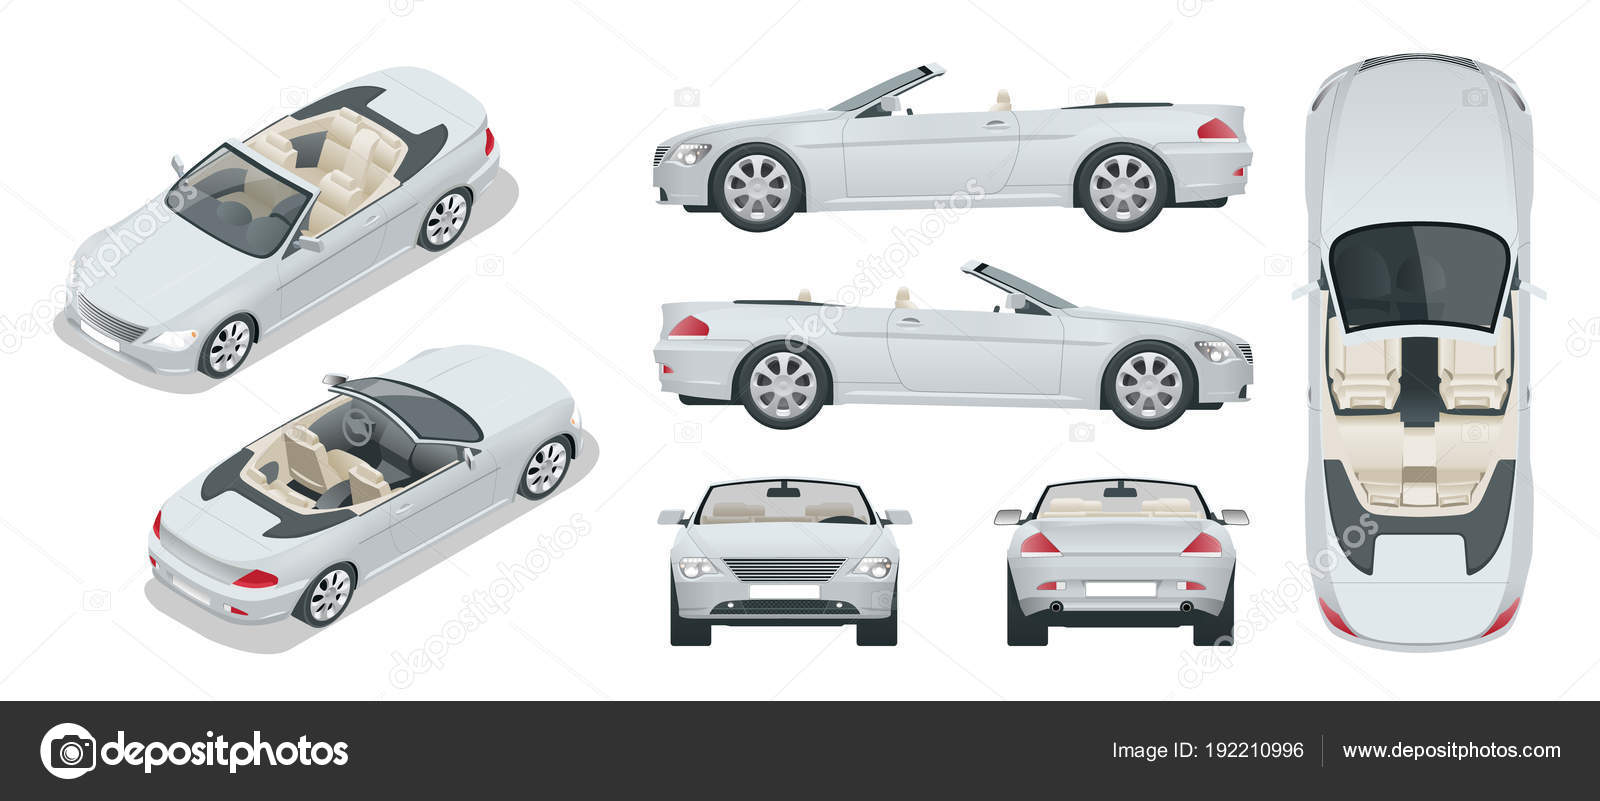 Transfer, Cabriolet car  Cabrio coupe vehicle template